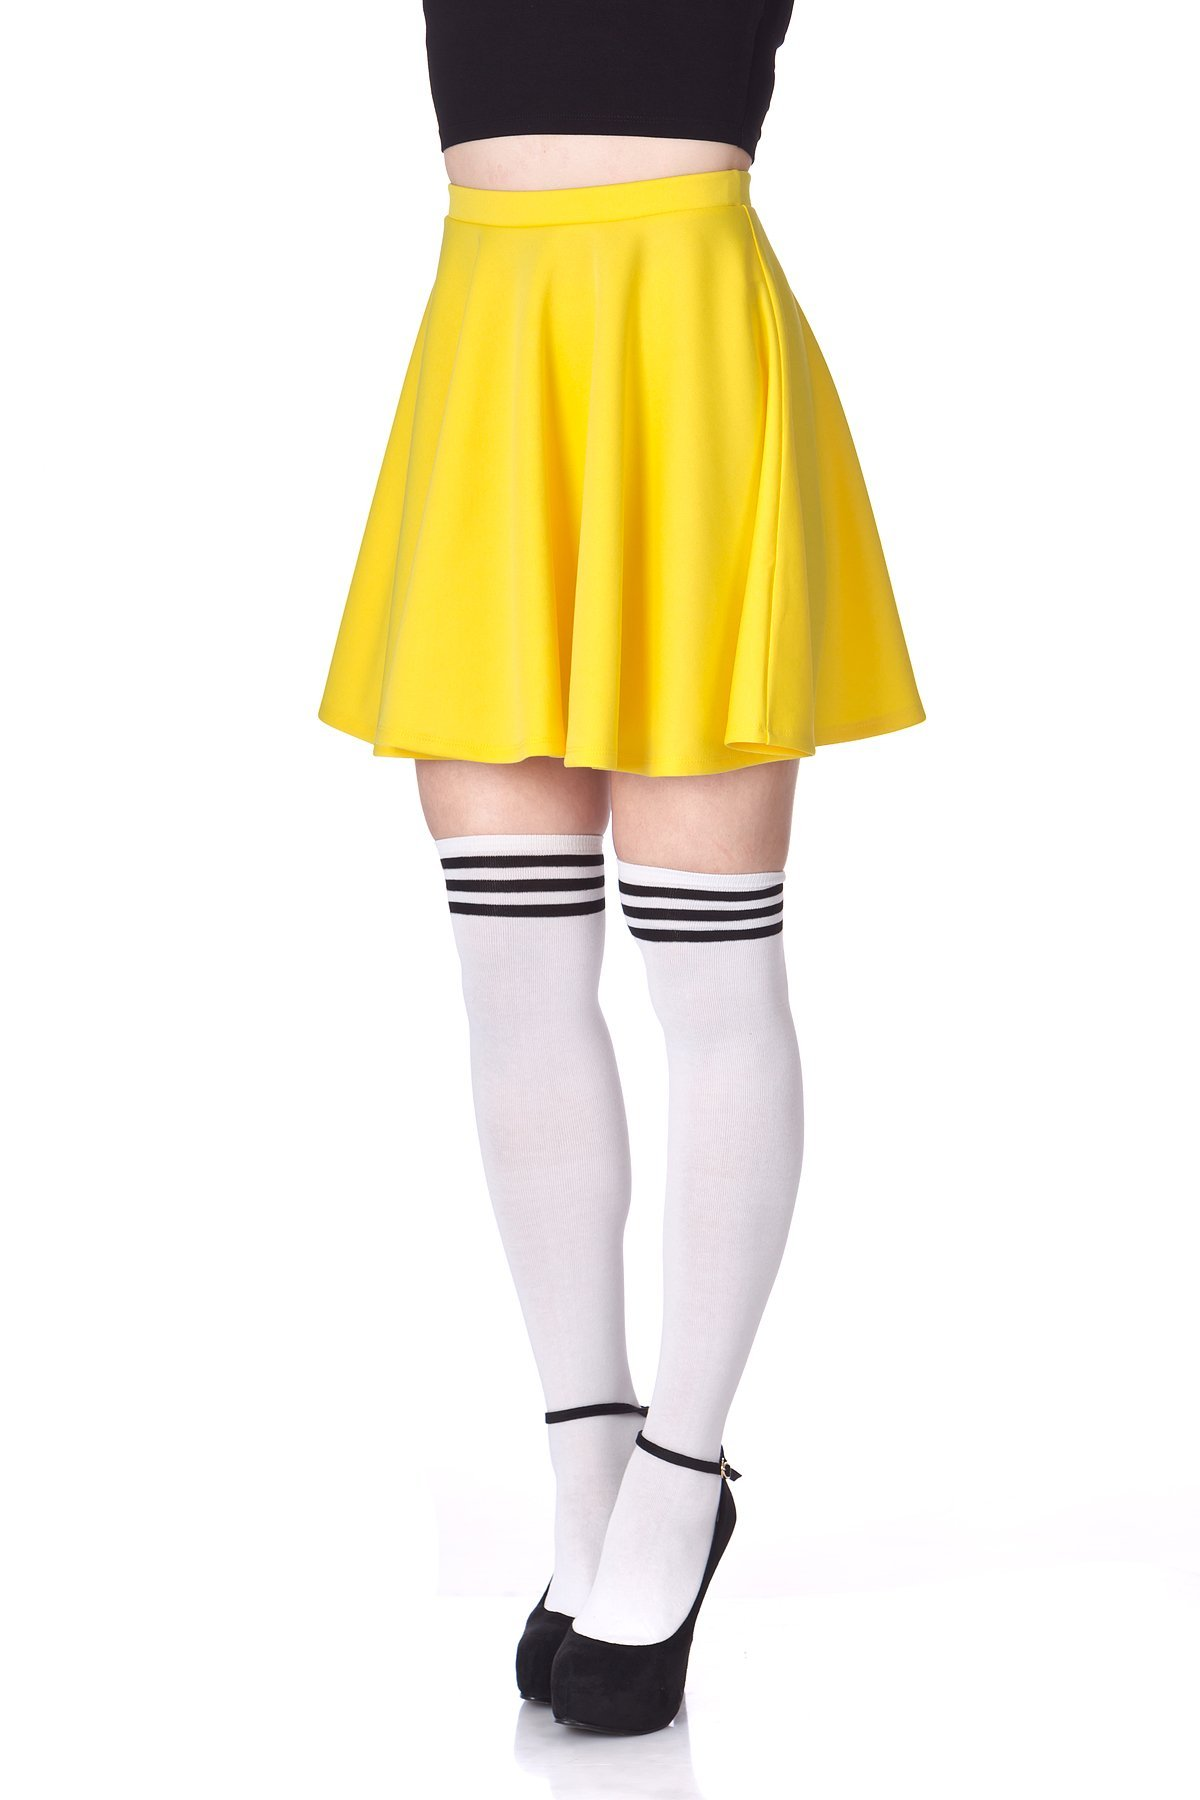 Flouncy High Waist A line Full Flared Circle Swing Dance Party Casual Skater Short Mini Skirt Yellow 06